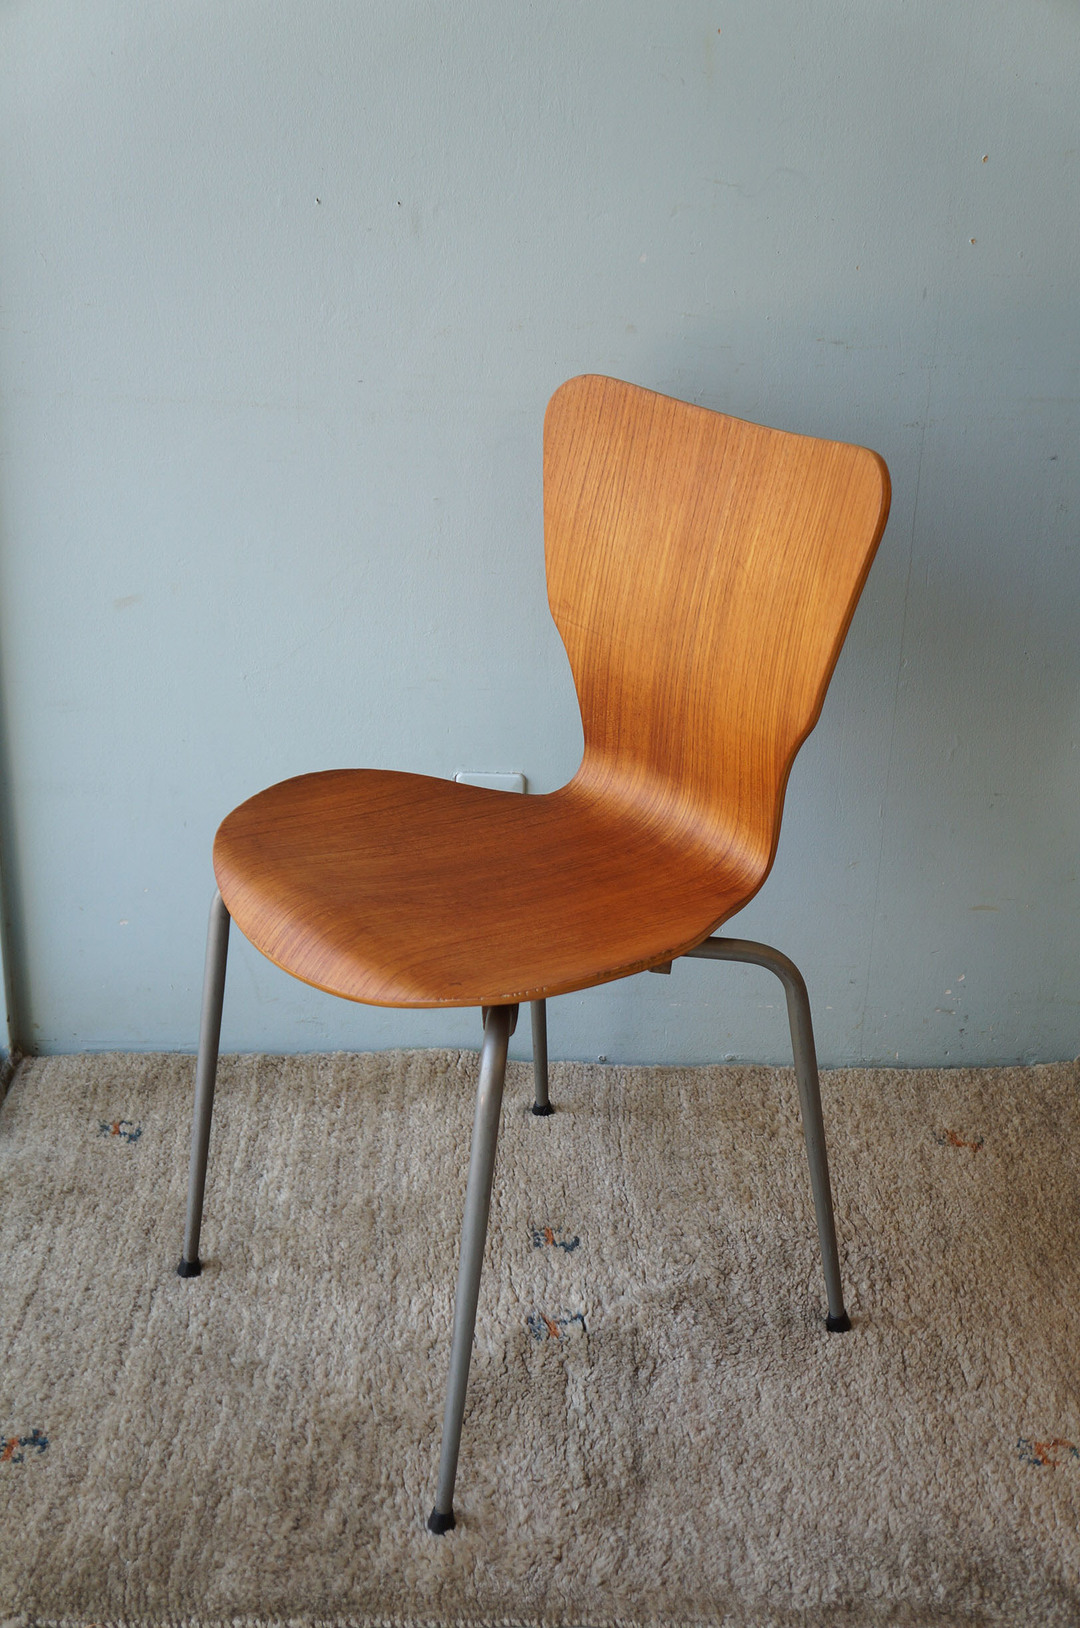 Danish Vintage Teak Plywood Stacking Chair MH Stålmøbler/デンマークヴィンテージ スタッキングチェア チーク材 プライウッド 椅子 ミッドセンチュリー モダン 北欧家具 6